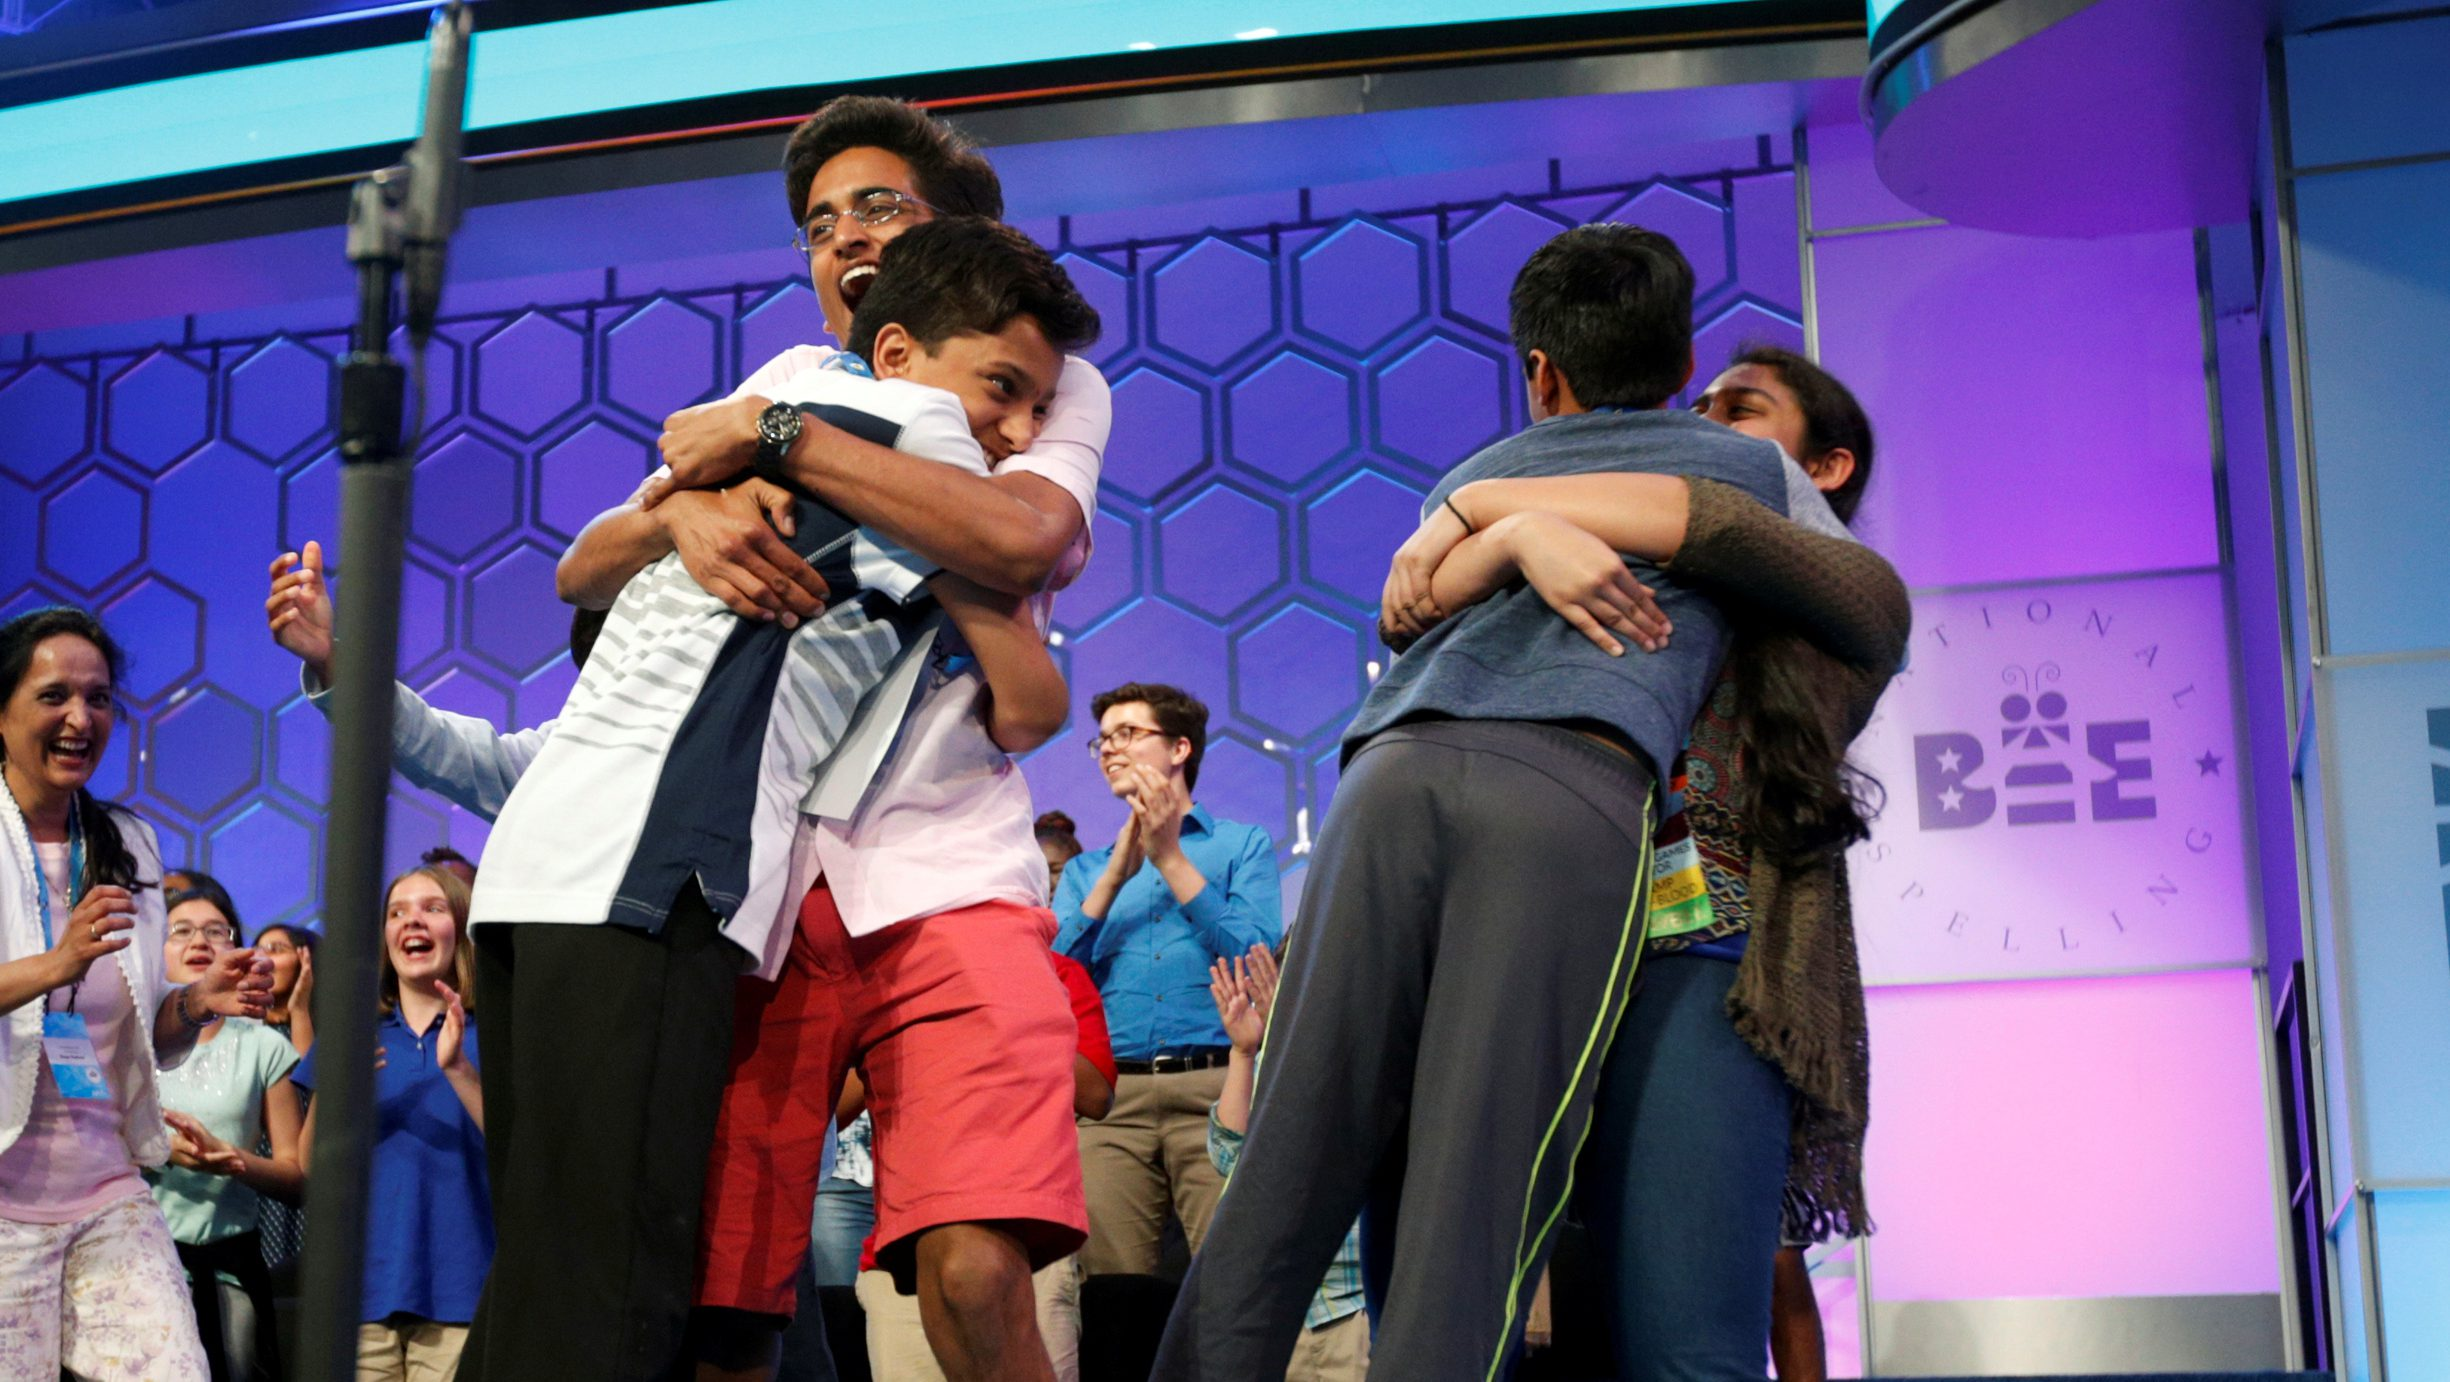 Co-champions Nihar Saireddy Janga (2nd R) and Jairam Jagadeesh Hathwar are swept up into the arms of family members upon completion of the final round of Scripps National Spelling Bee at National Harbor in Maryland, U.S., May 26, 2016. REUTERS/Kevin Lamarque - RTX2EEVE